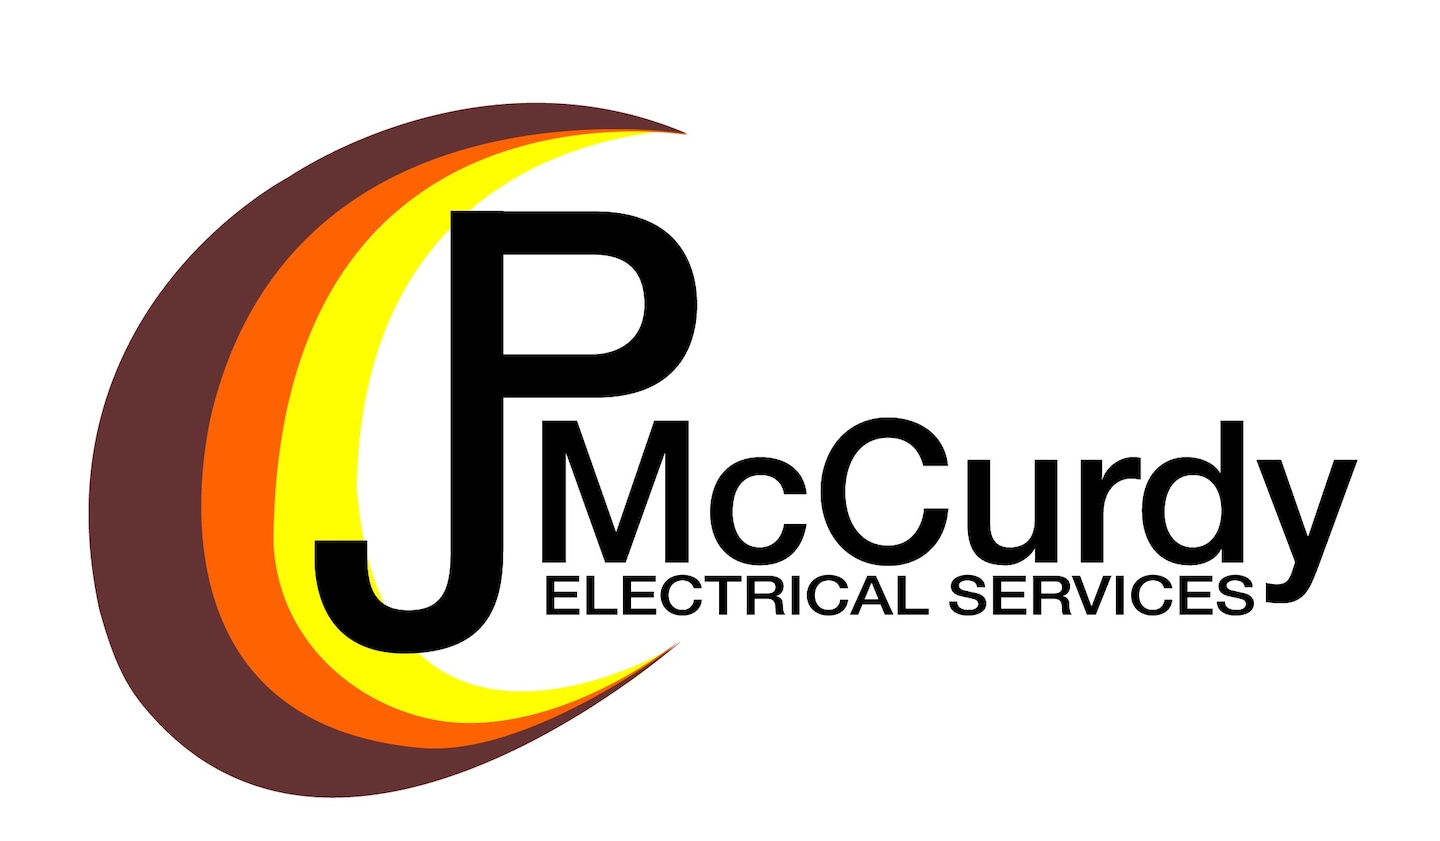 JP McCurdy Electrical Services Inc